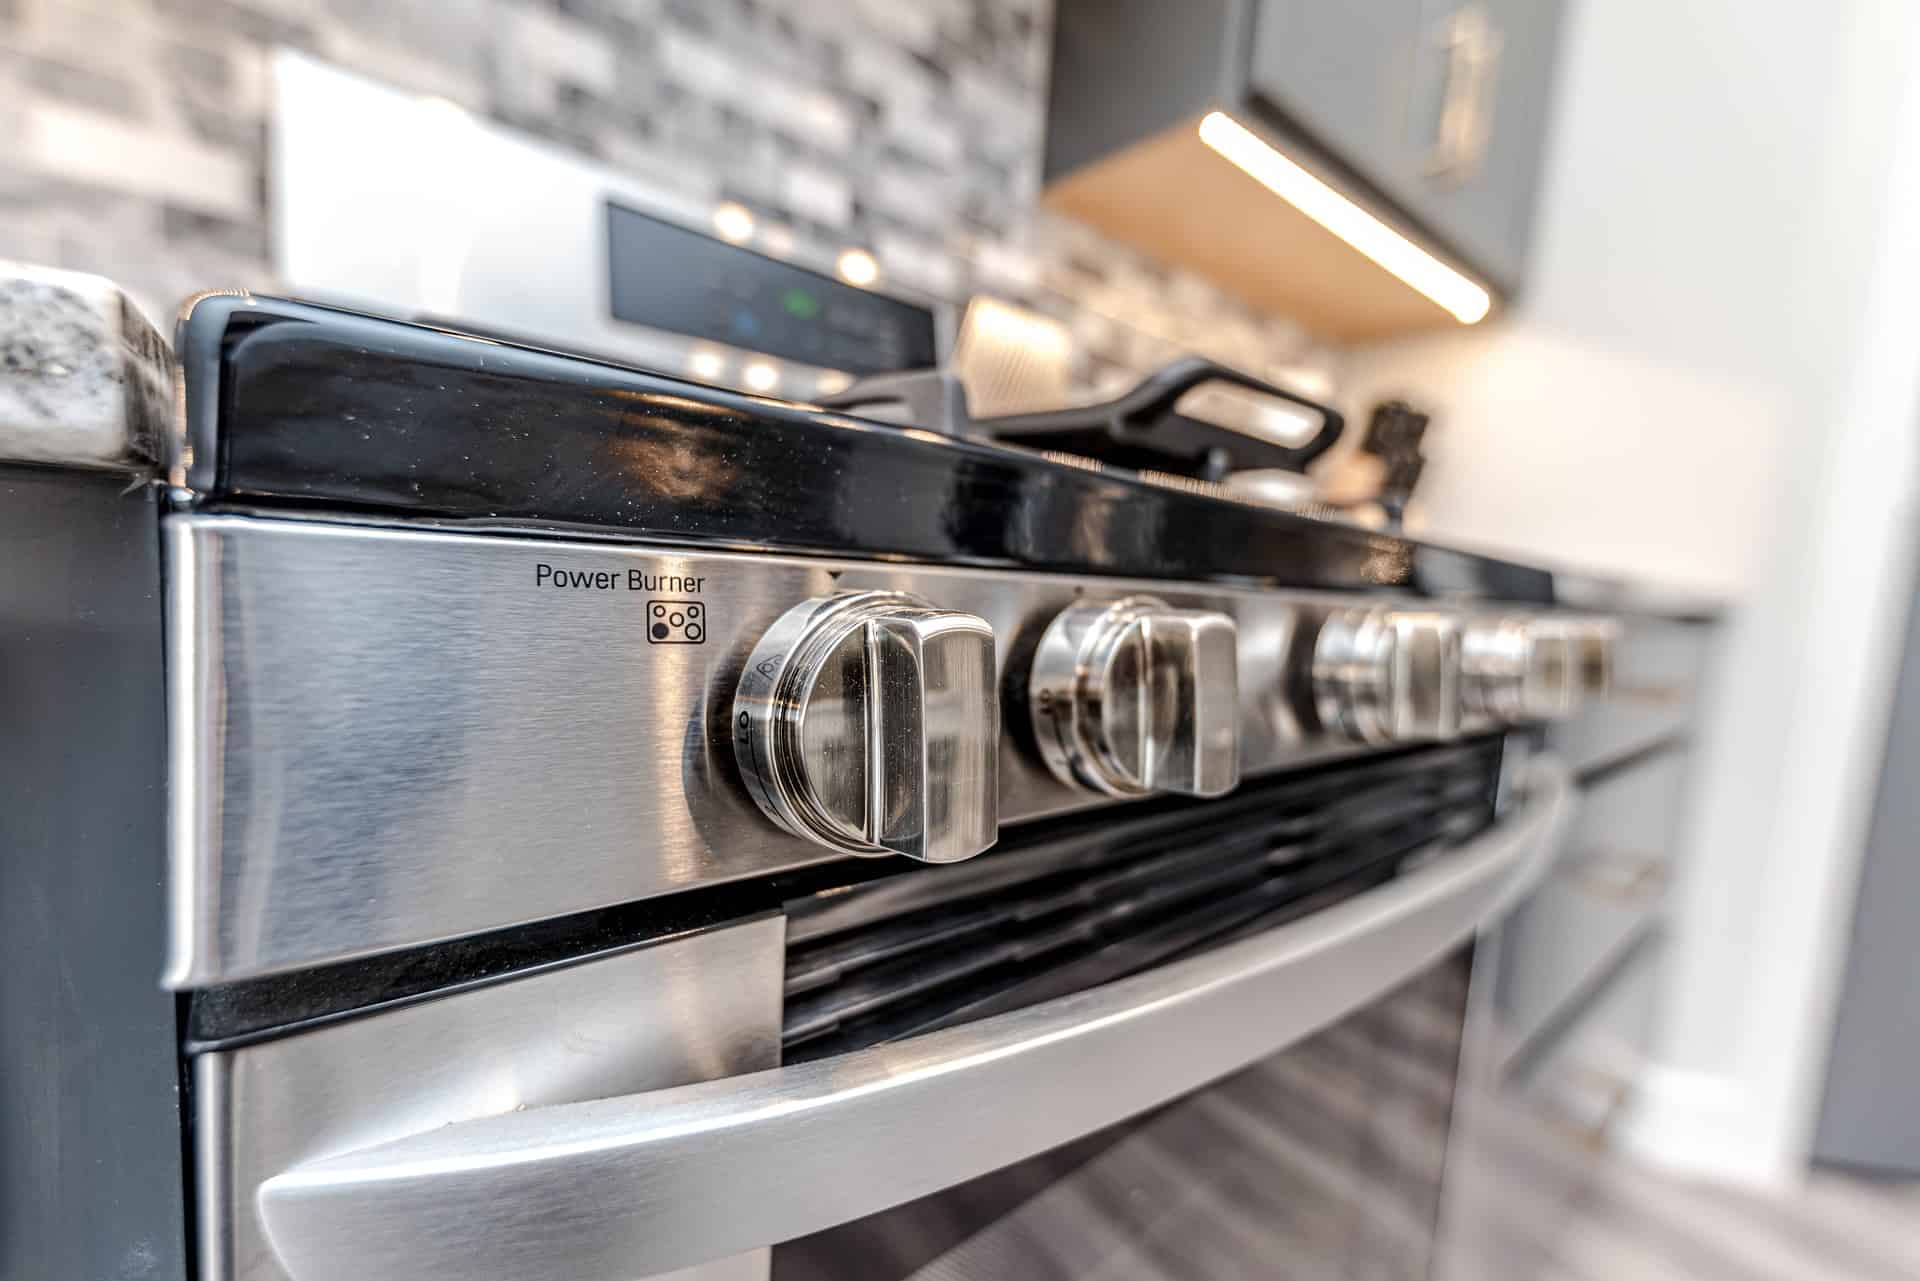 Do Self Cleaning Ovens Work As Advertised?